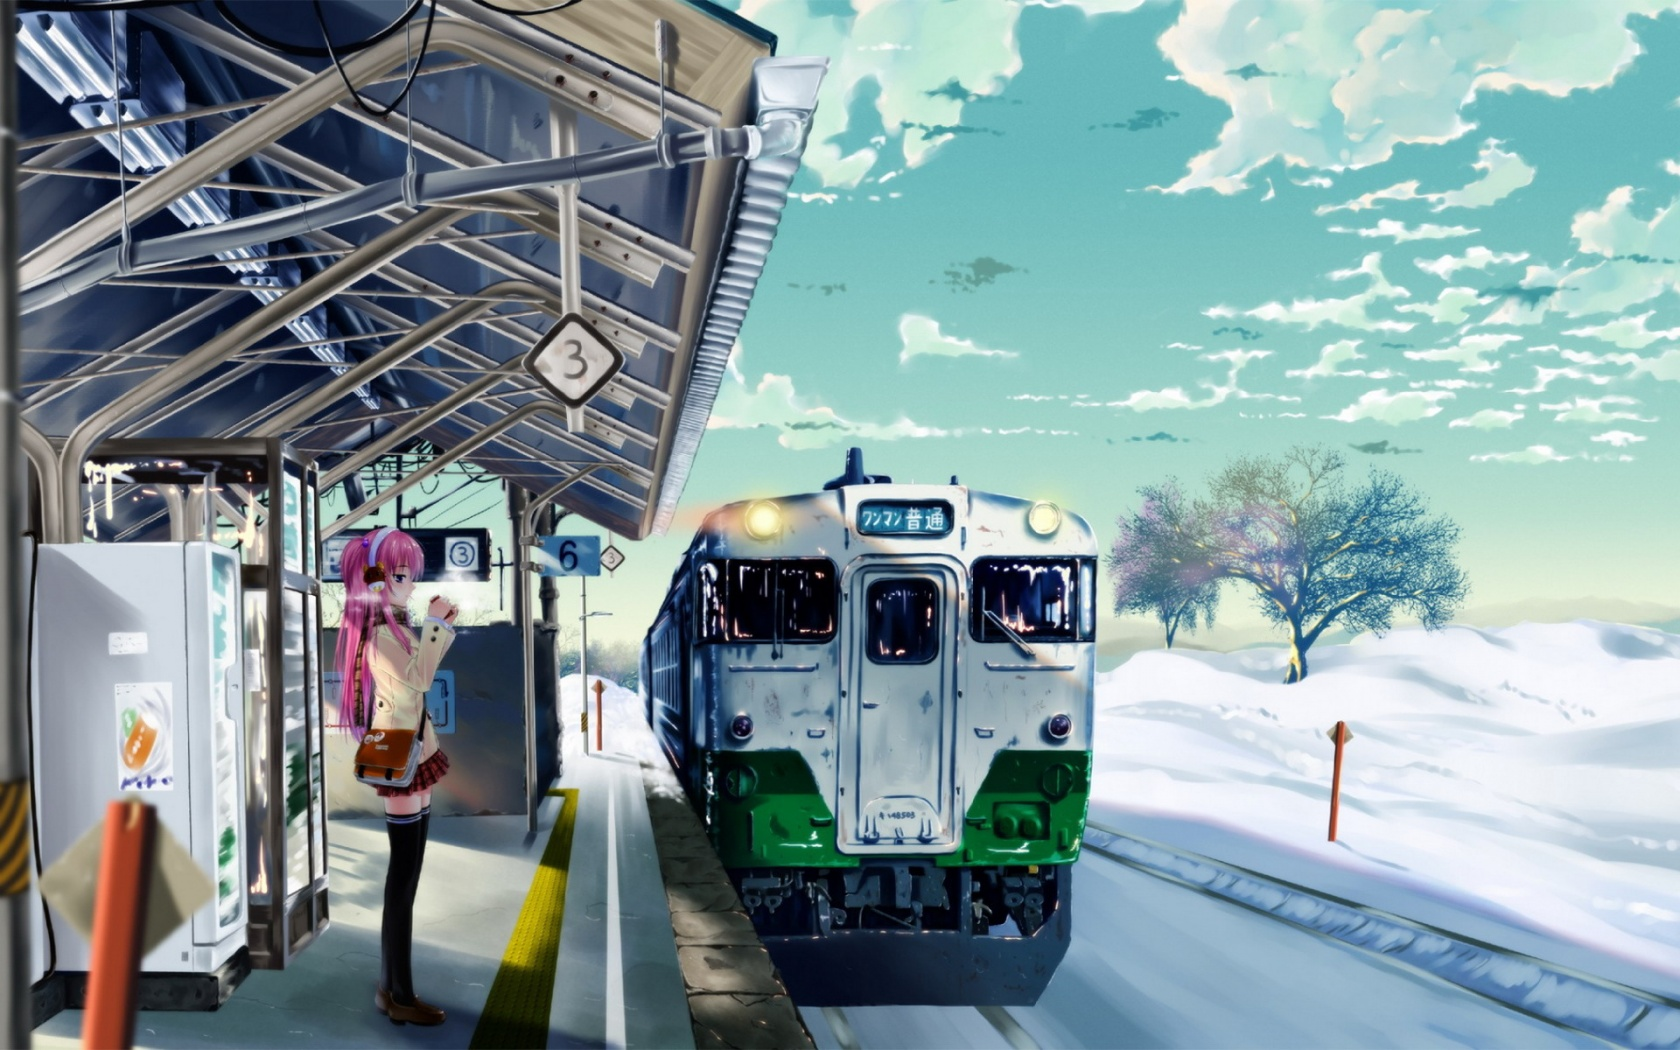 Anime girl trainstation winter Wallpaper in 1680x1050 Widescreen